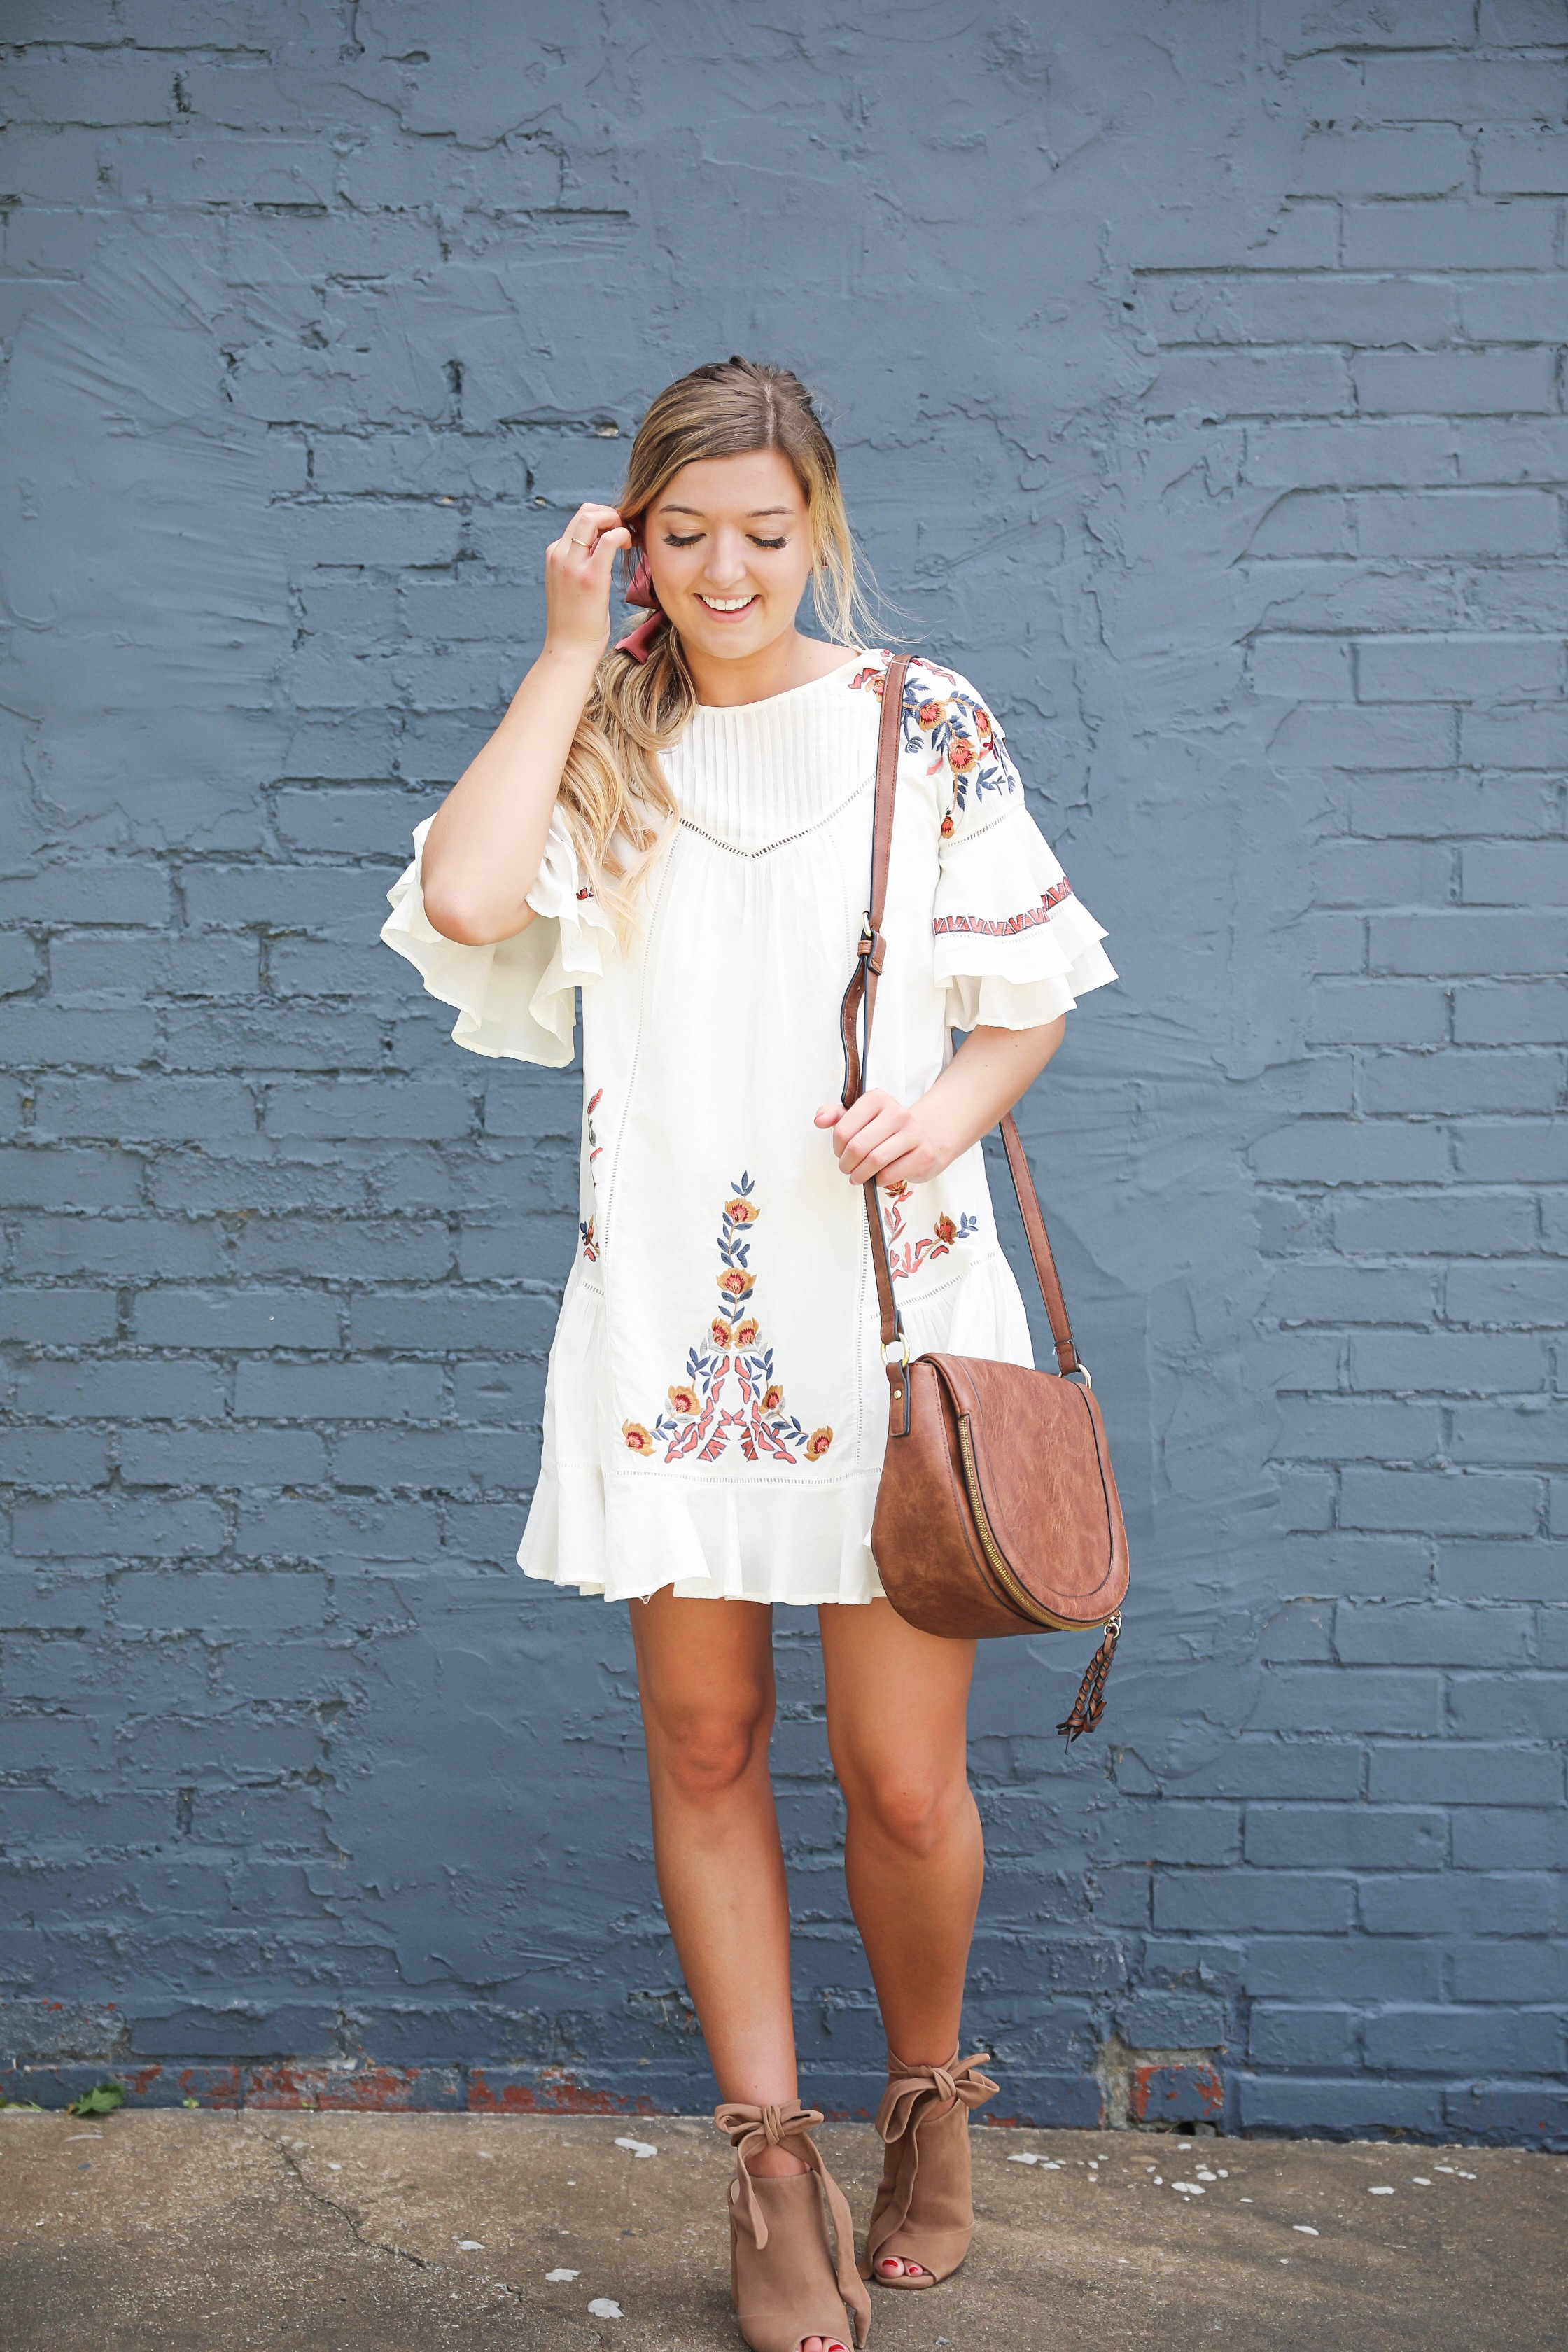 Free People embrodiered white dress for summer! I paired this adorable summer dress with a mauve hair bow and saddle bag by sole society! I love my hair in a ponytail with a bow, hair scarves are so in right now! Details on fashion blog by daily dose of charm by lauren lindmark